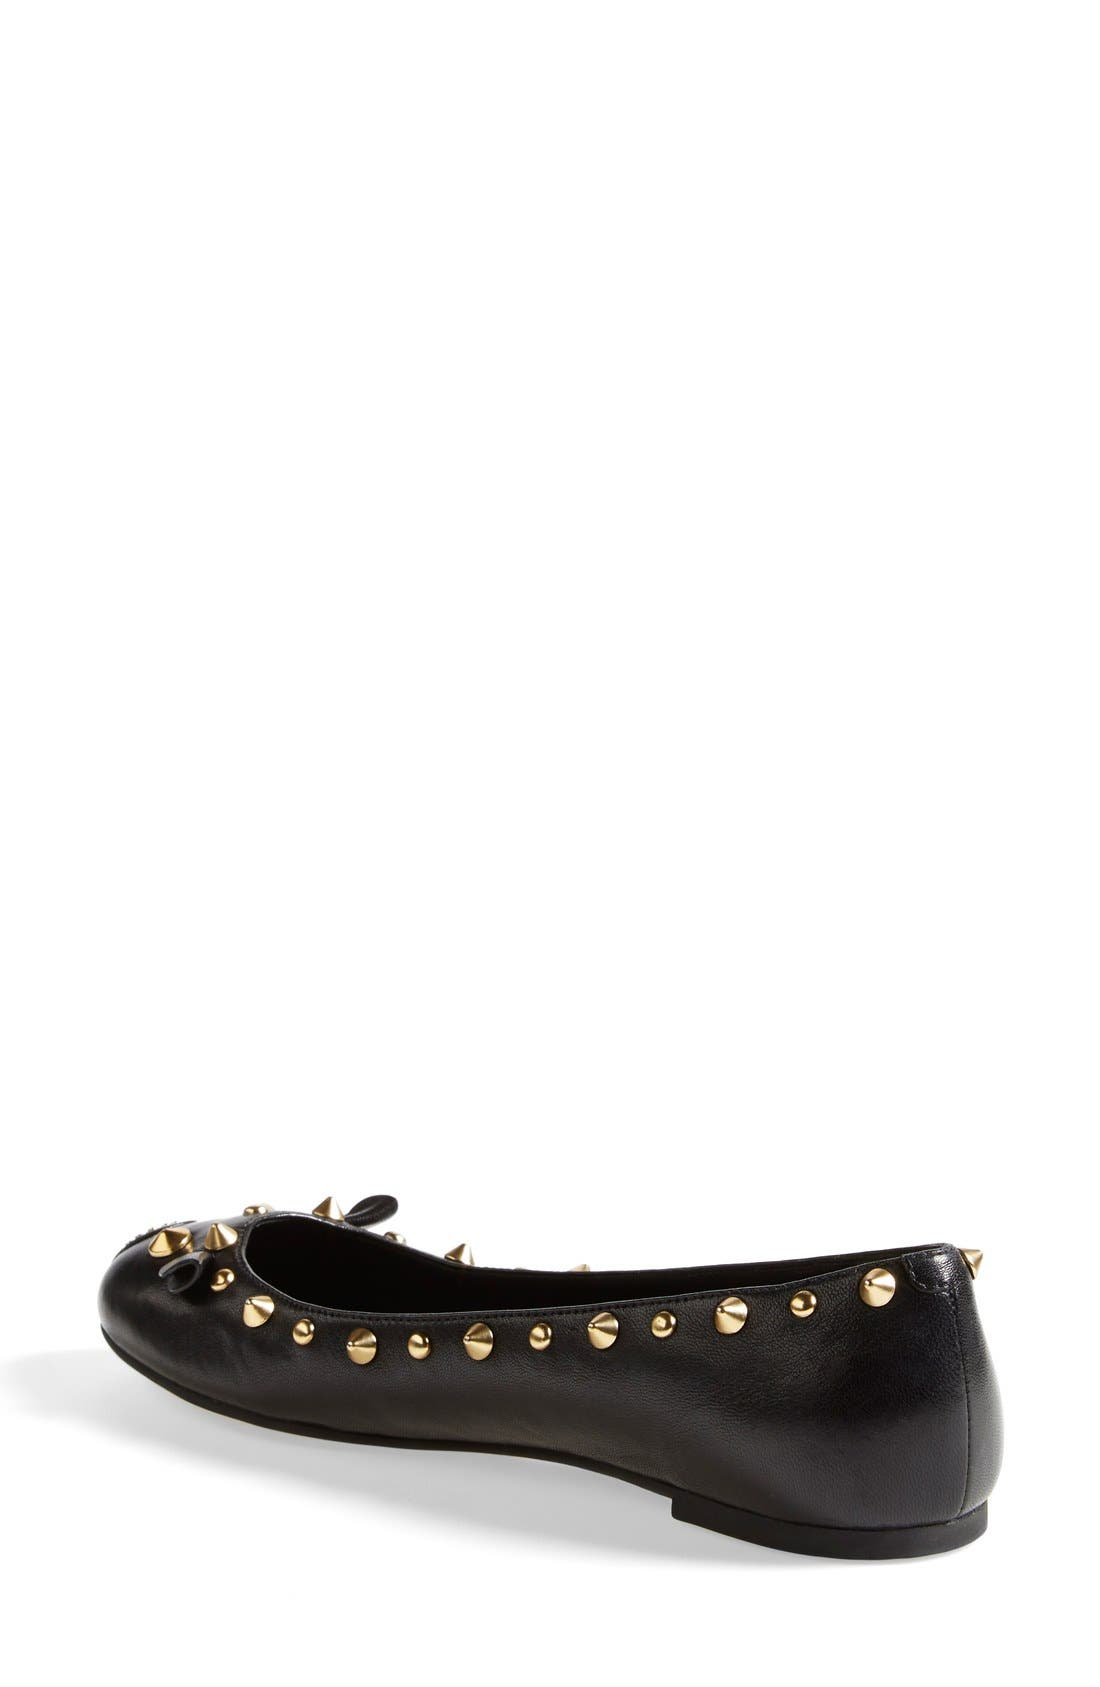 MARC BY MARC JACOBS 'Punk Mouse' Ballerina Flat,                             Alternate thumbnail 3, color,                             001